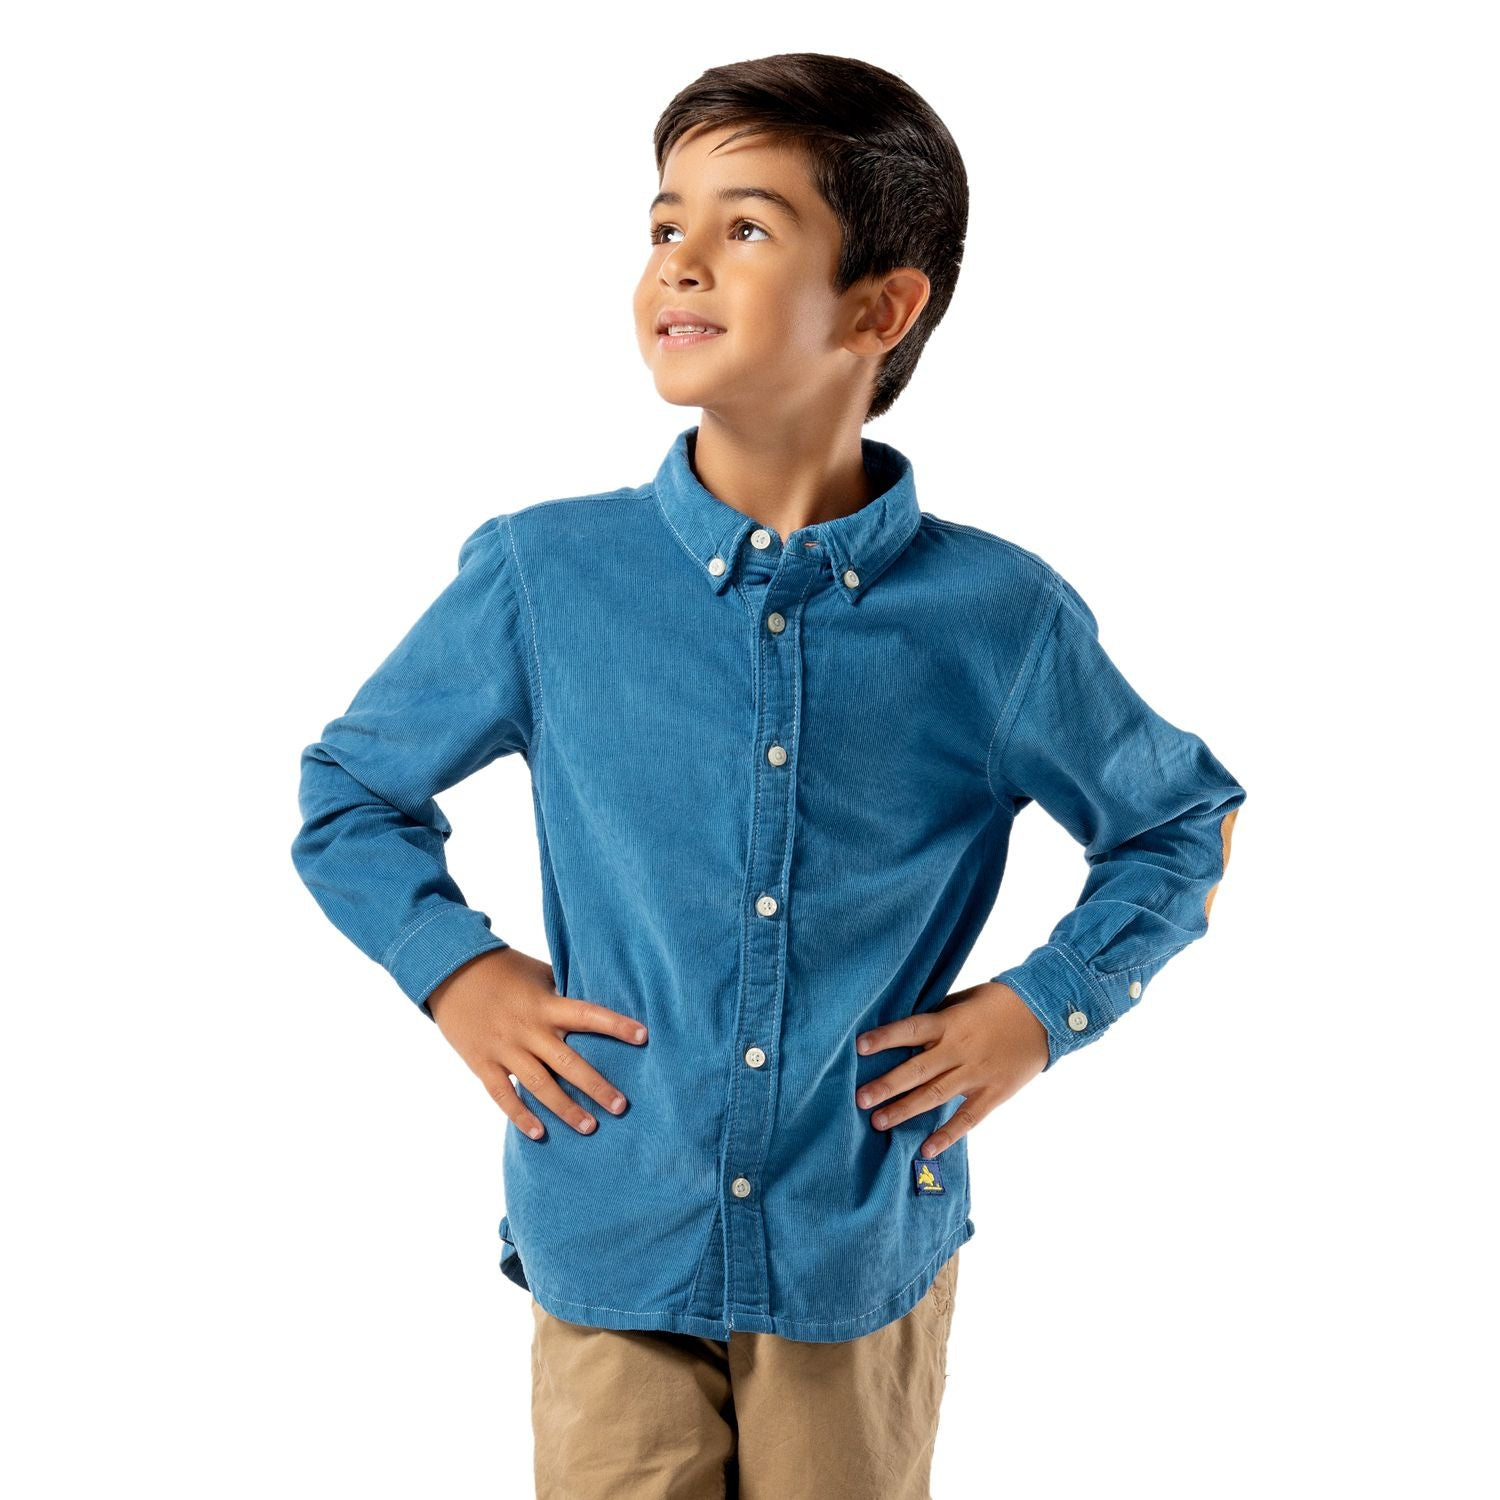 Volt Shirt for Boys